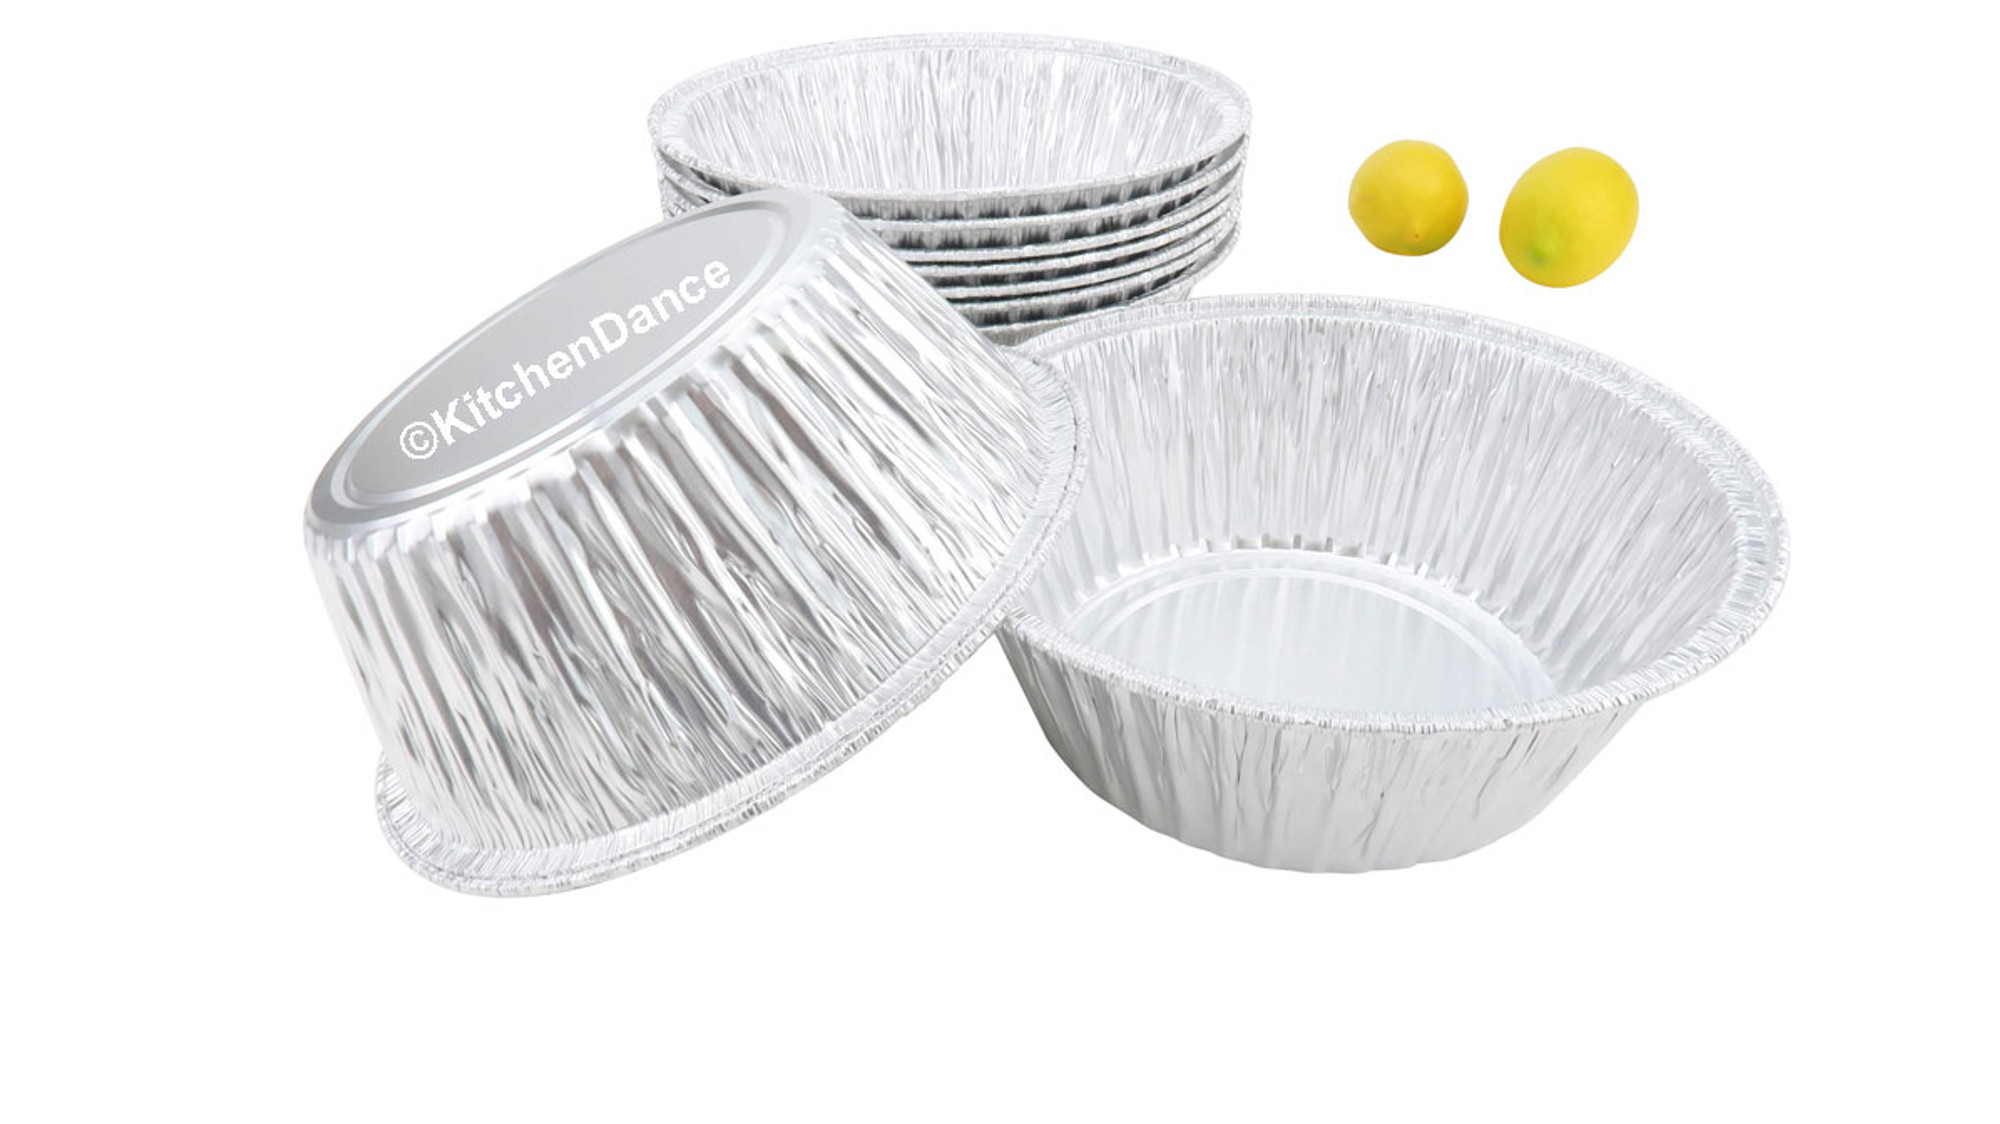 Disposable Round Baking Aluminum Pans 10-inch Round Extra Deep Round Casserole Cake Pan 10 Count